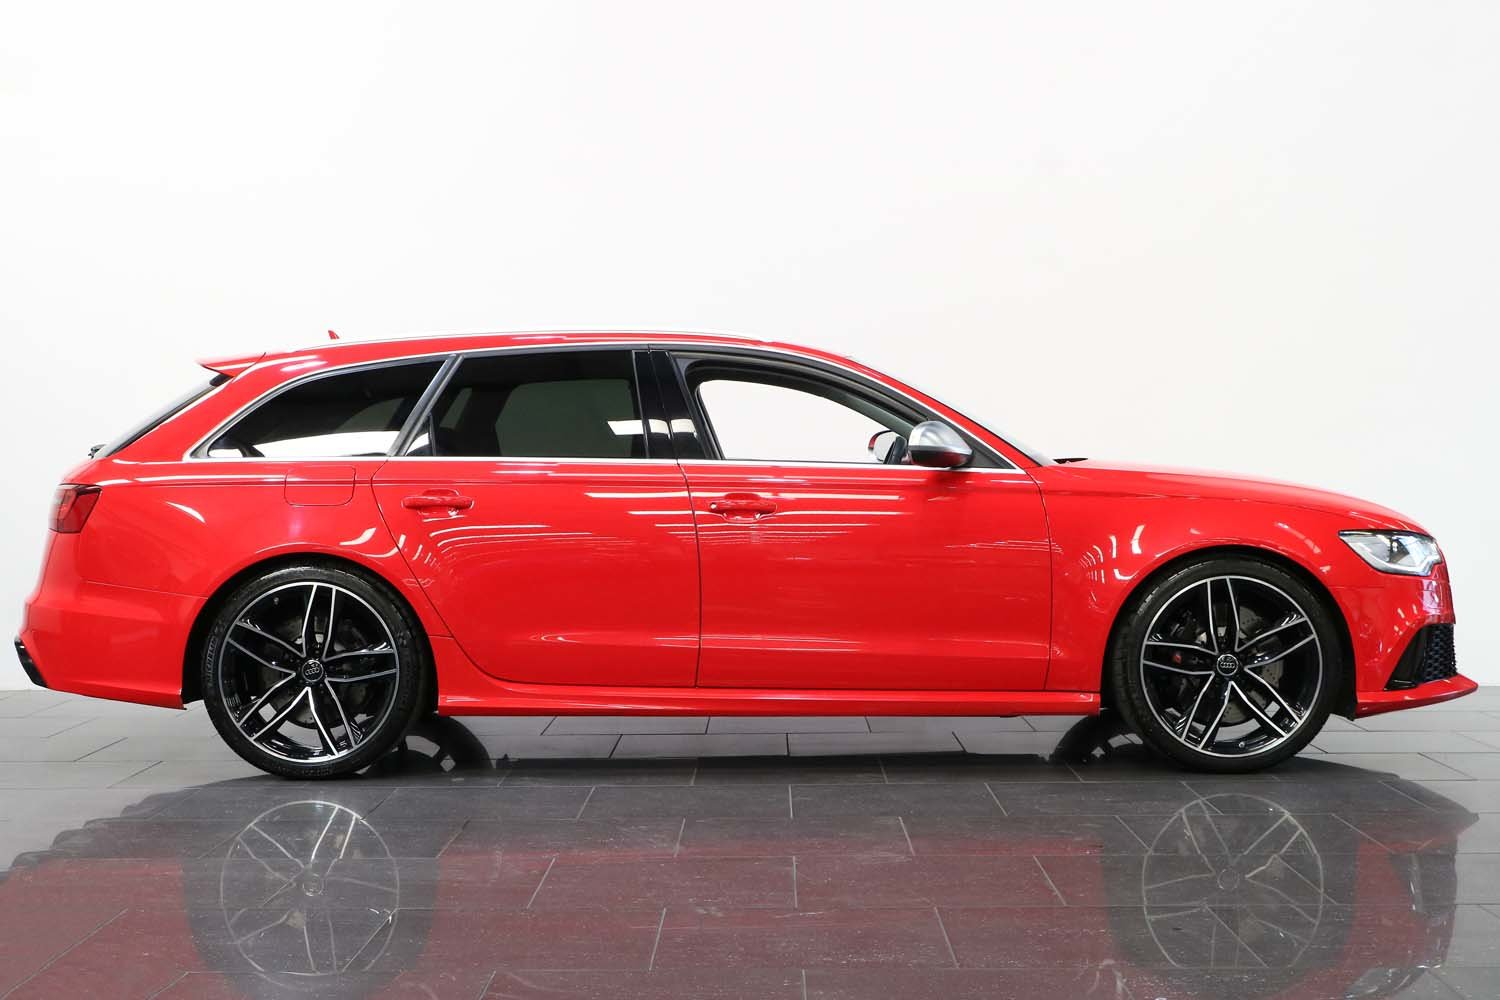 2014 14 64 AUDI RS6 AVANT 4.0T V8 FSI AUTO For Sale (picture 2 of 6)